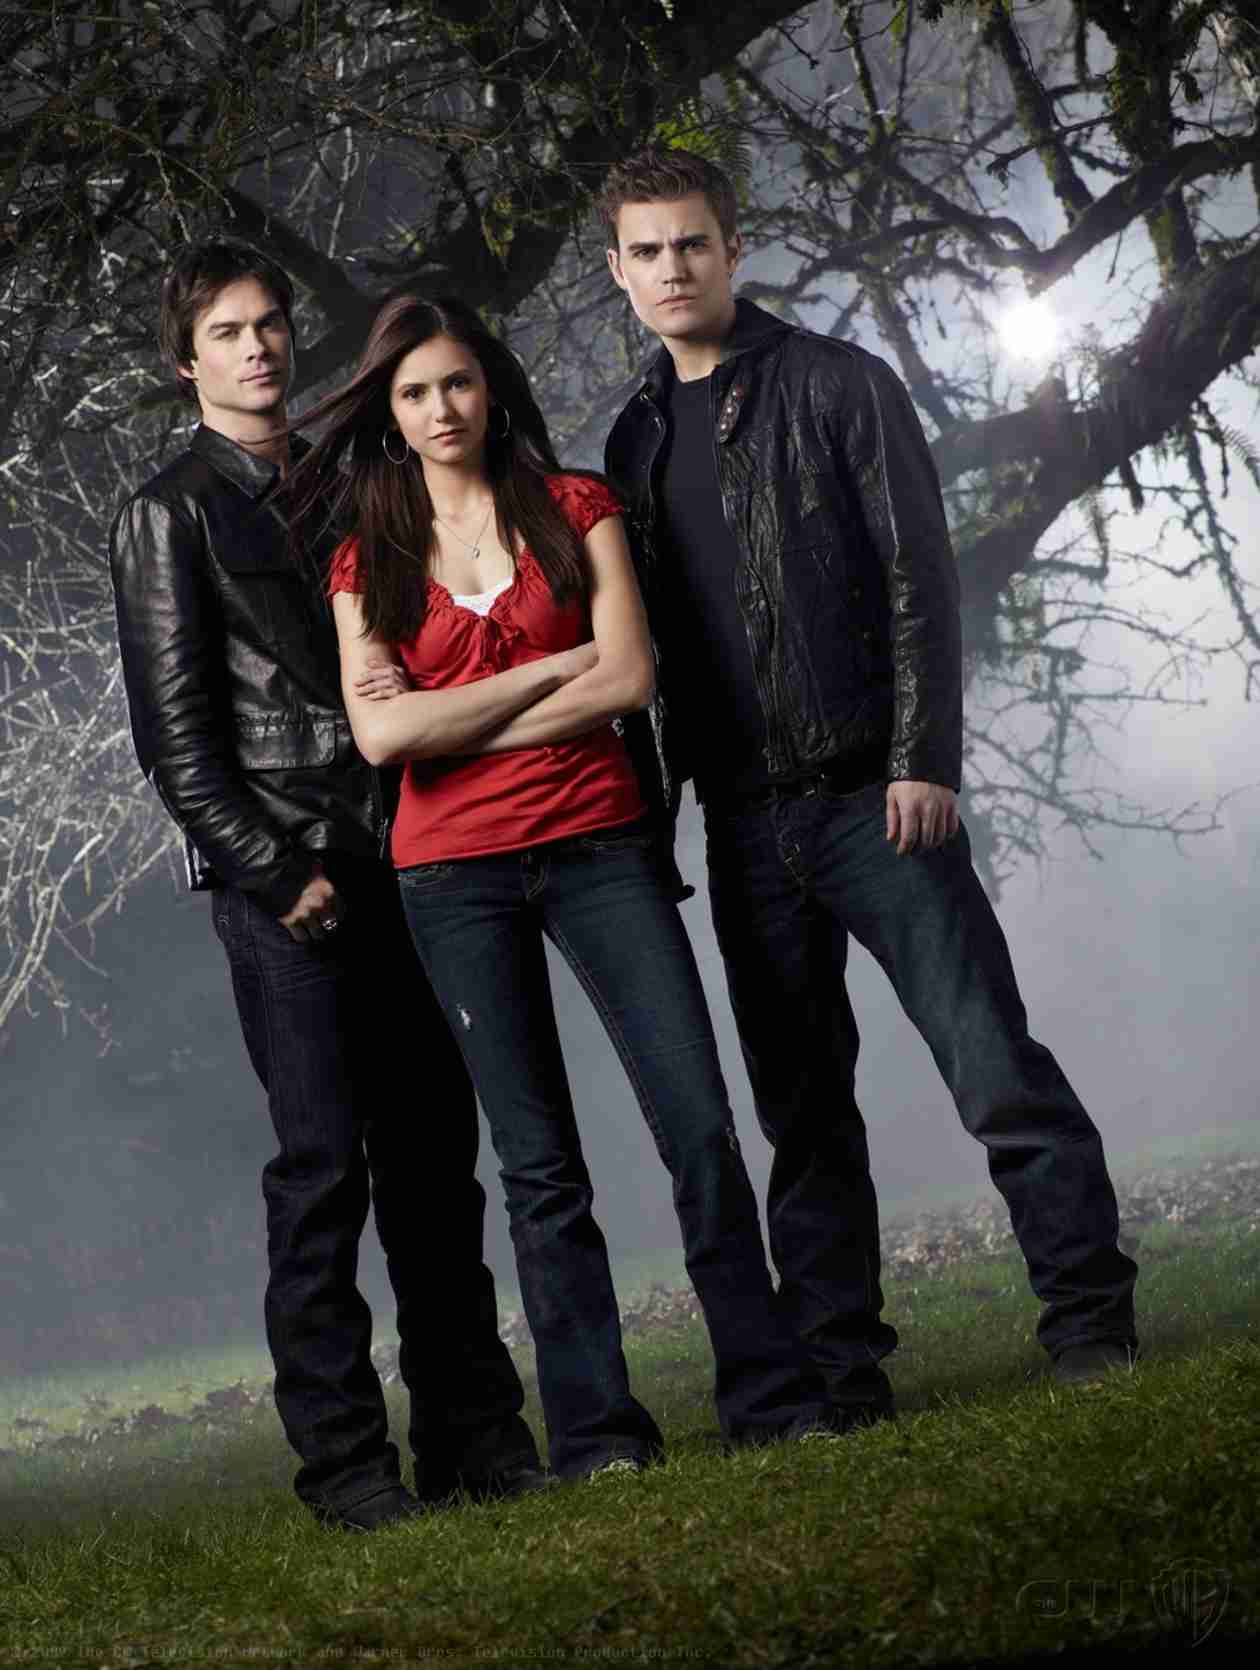 Could The Vampire Diaries Continue Without Its Stars? Julie Plec Says…